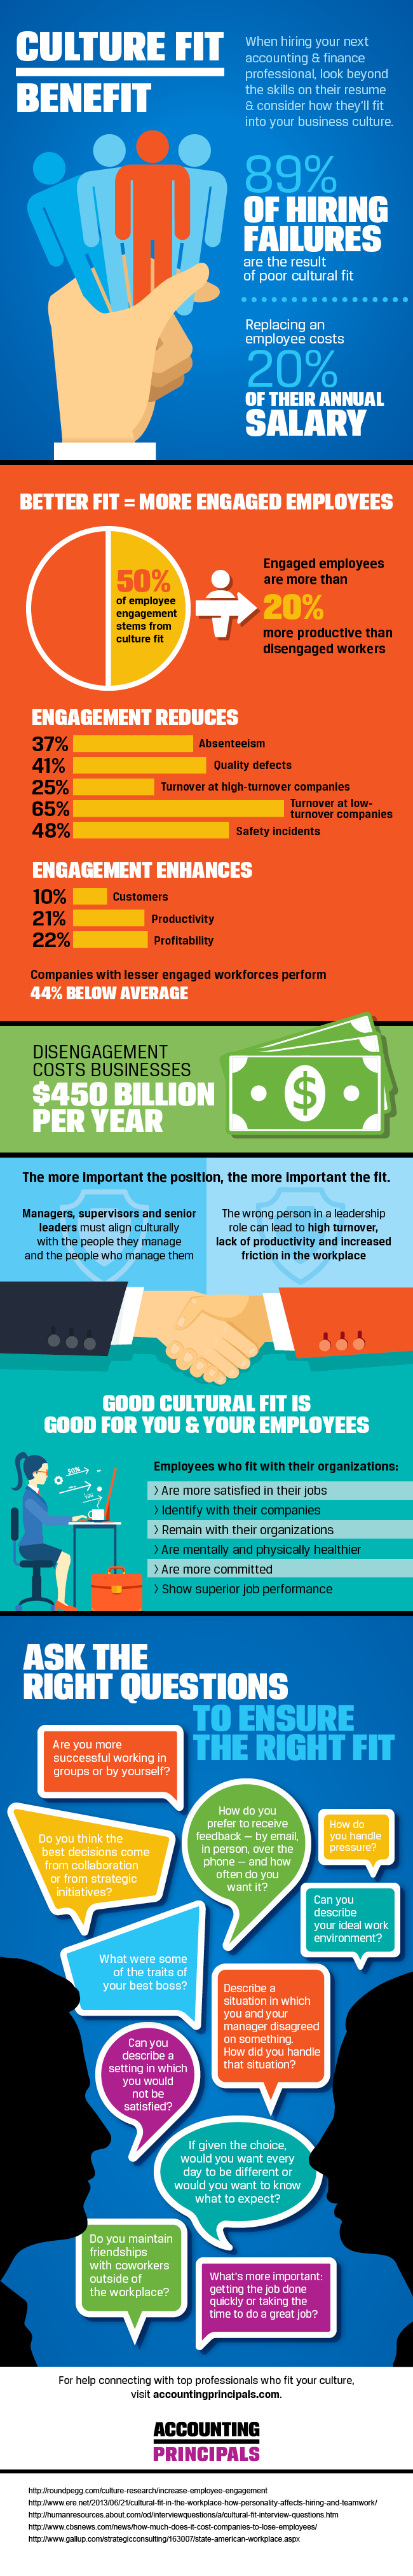 : Hiring employees for an ideal cultural fit at your company